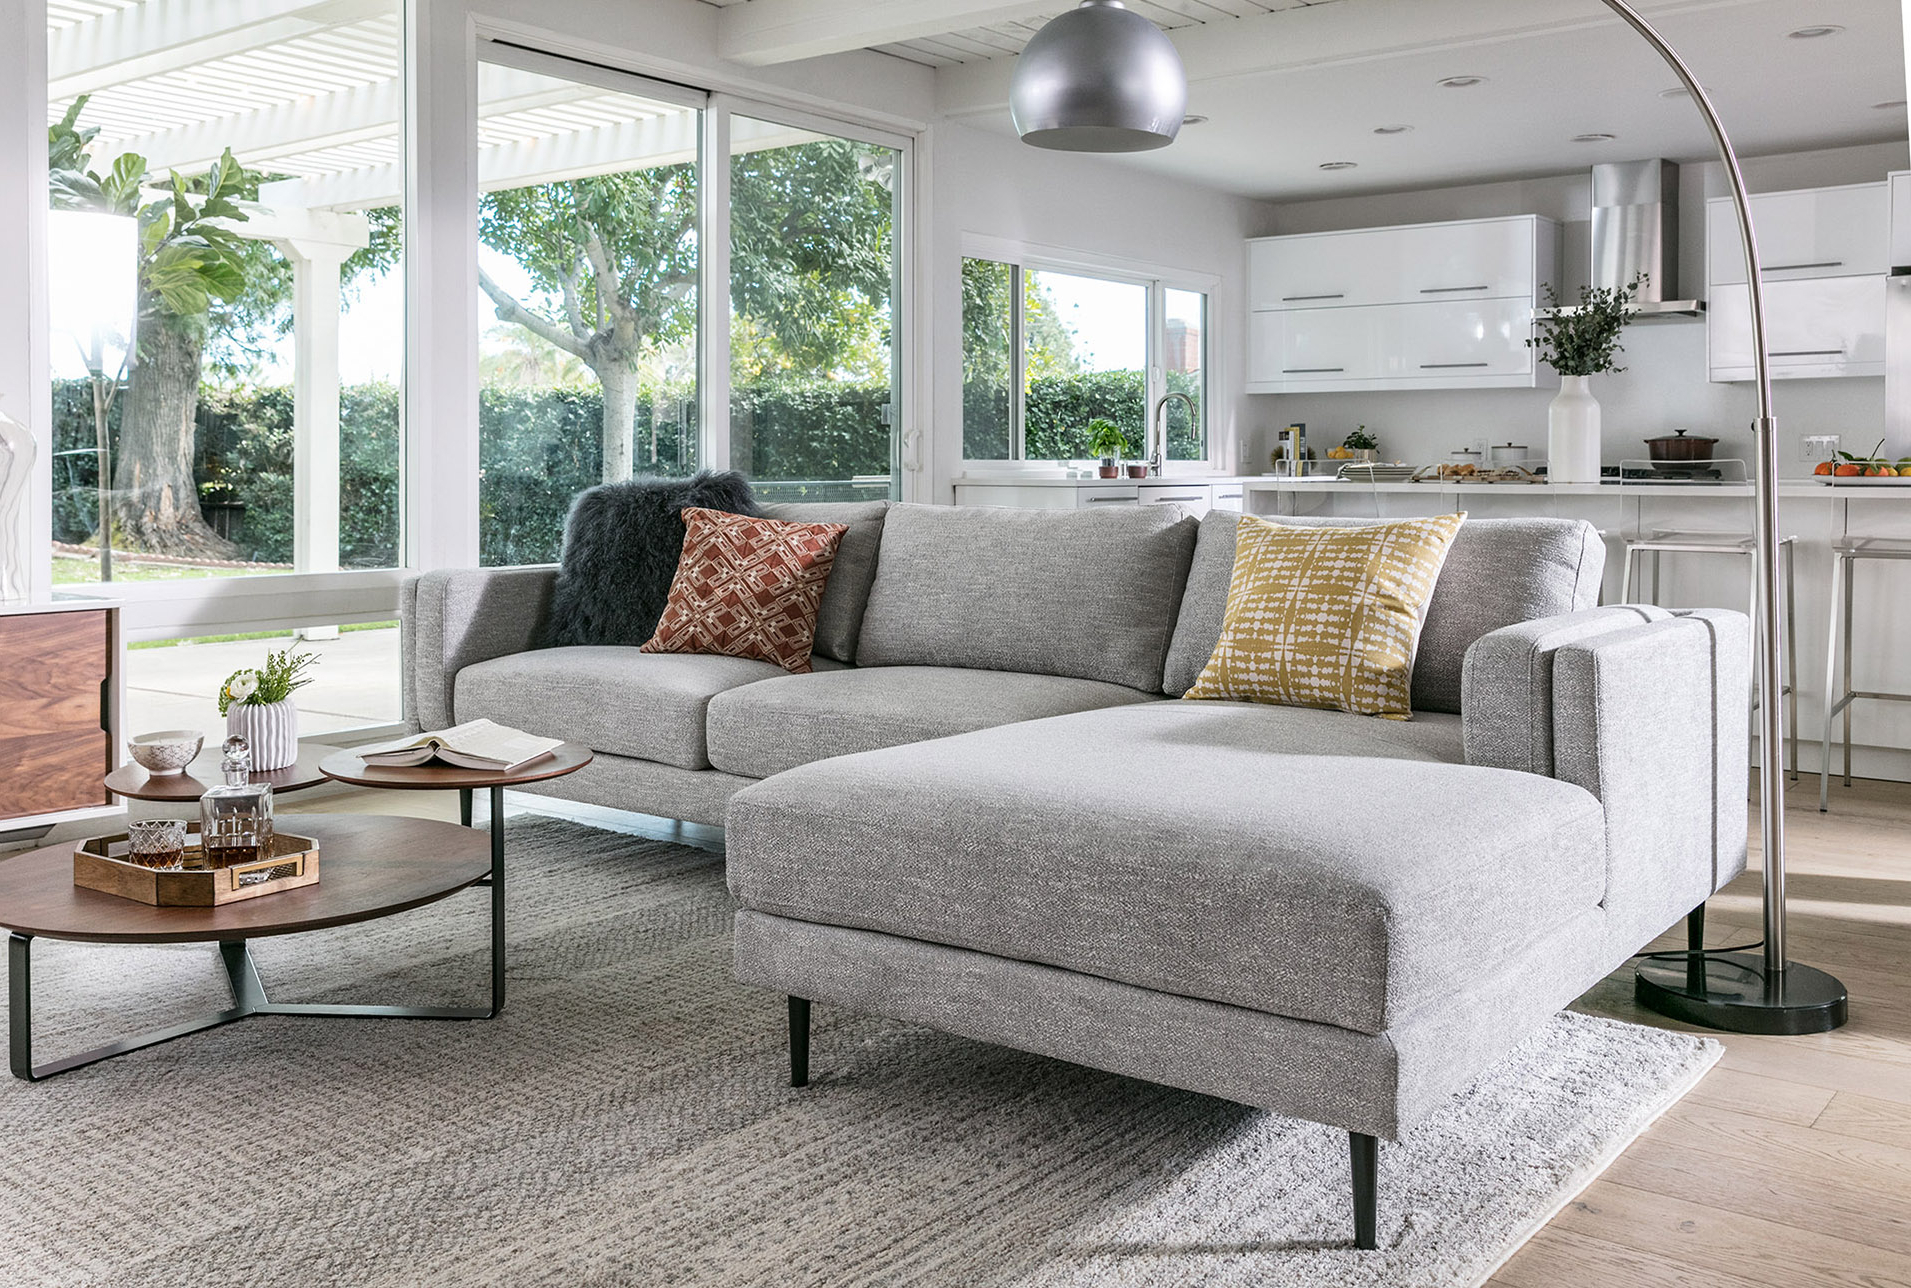 Current Aquarius Light Grey 2 Piece Sectionals With Laf Chaise In Aquarius Light Grey 2 Piece Sectional W/laf Chaise (View 6 of 20)